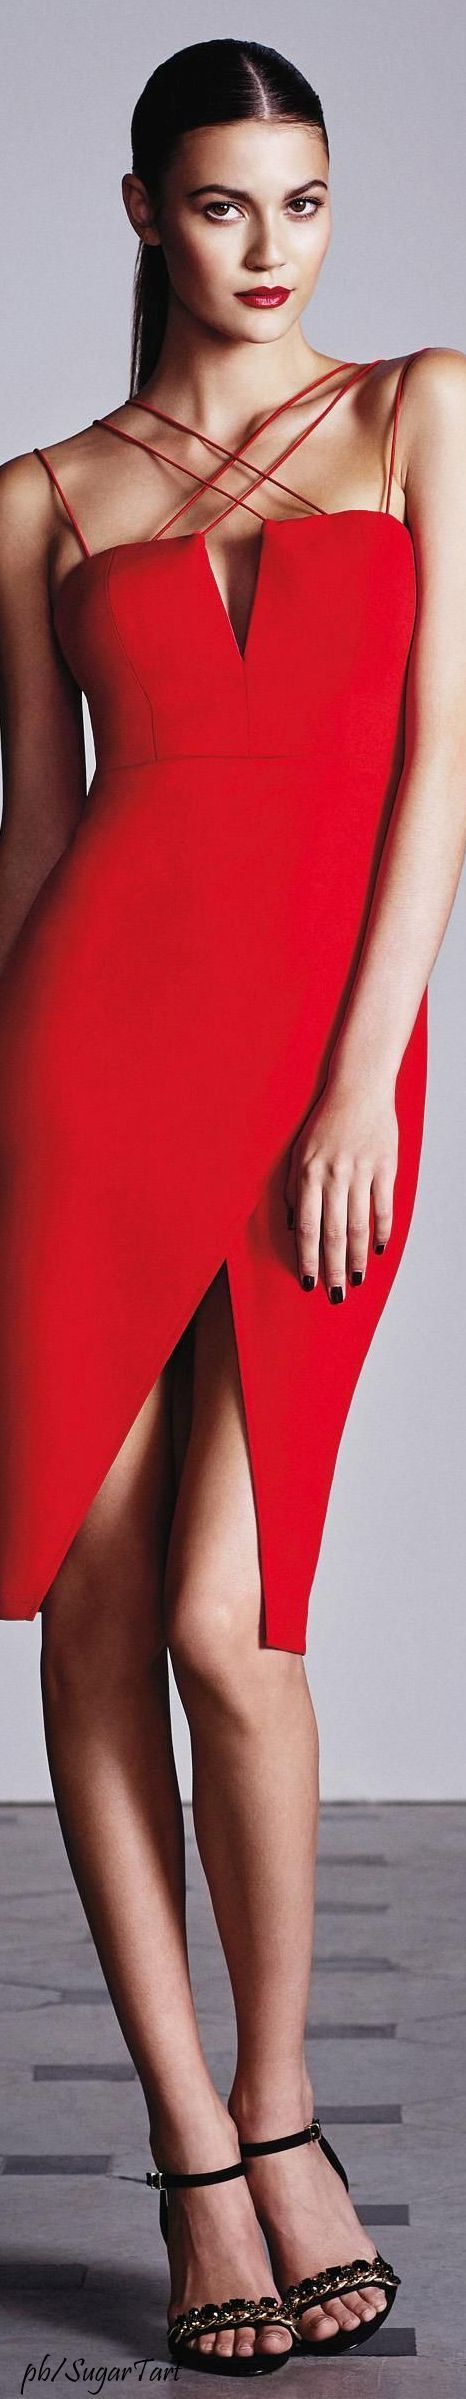 вєαυтιғυℓ αɴgєℓ Little Red Dresses Little Red Dresses, dress, clothe, women's fashion, outfit inspiration, pretty clothes, shoes, bags and accessories